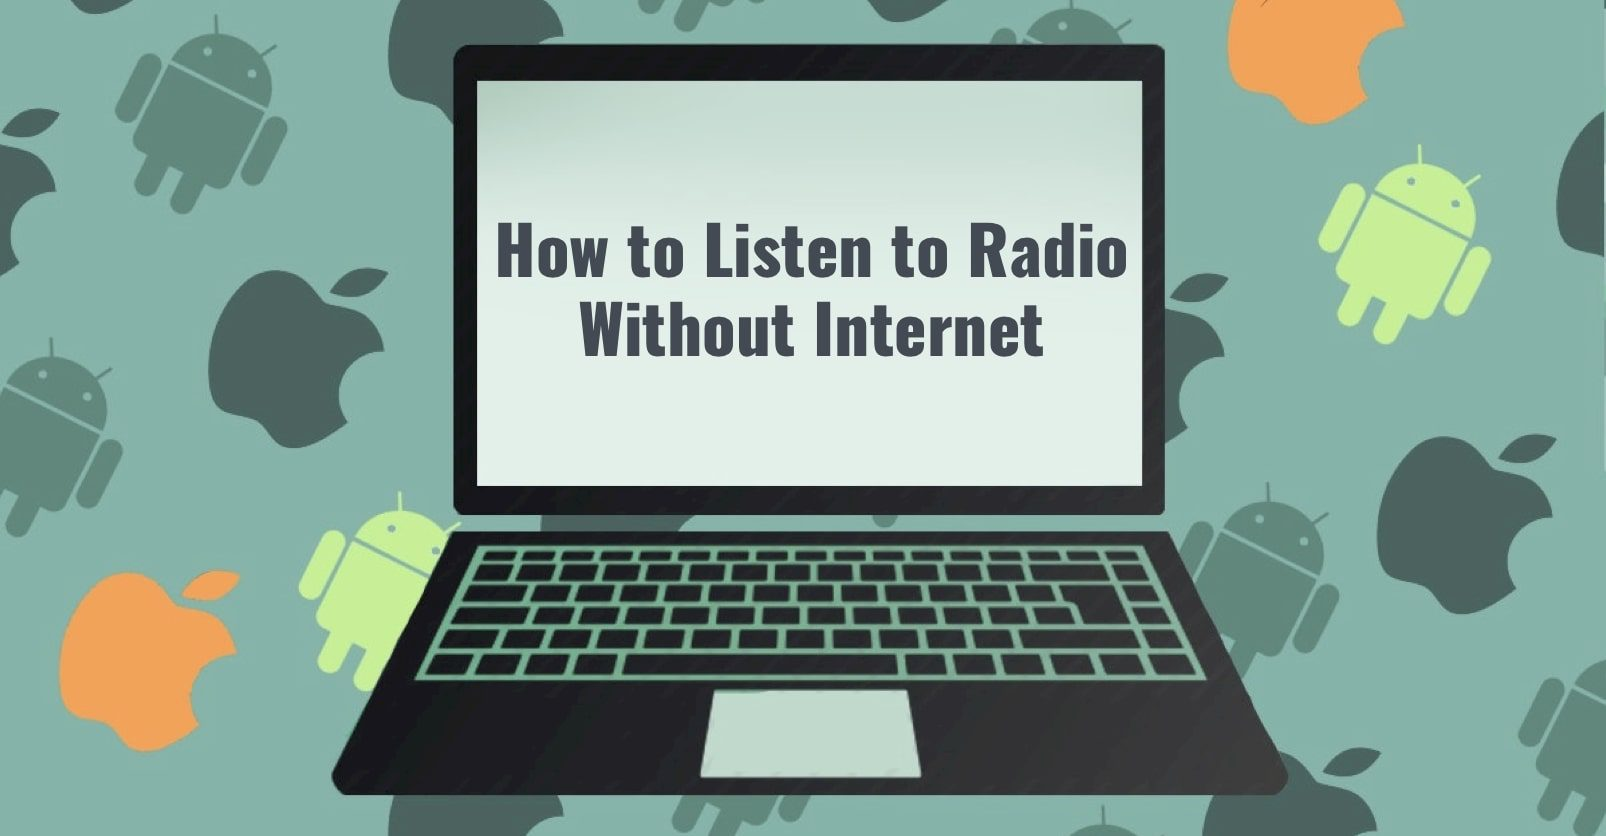 How to Listen to Radio Without Internet